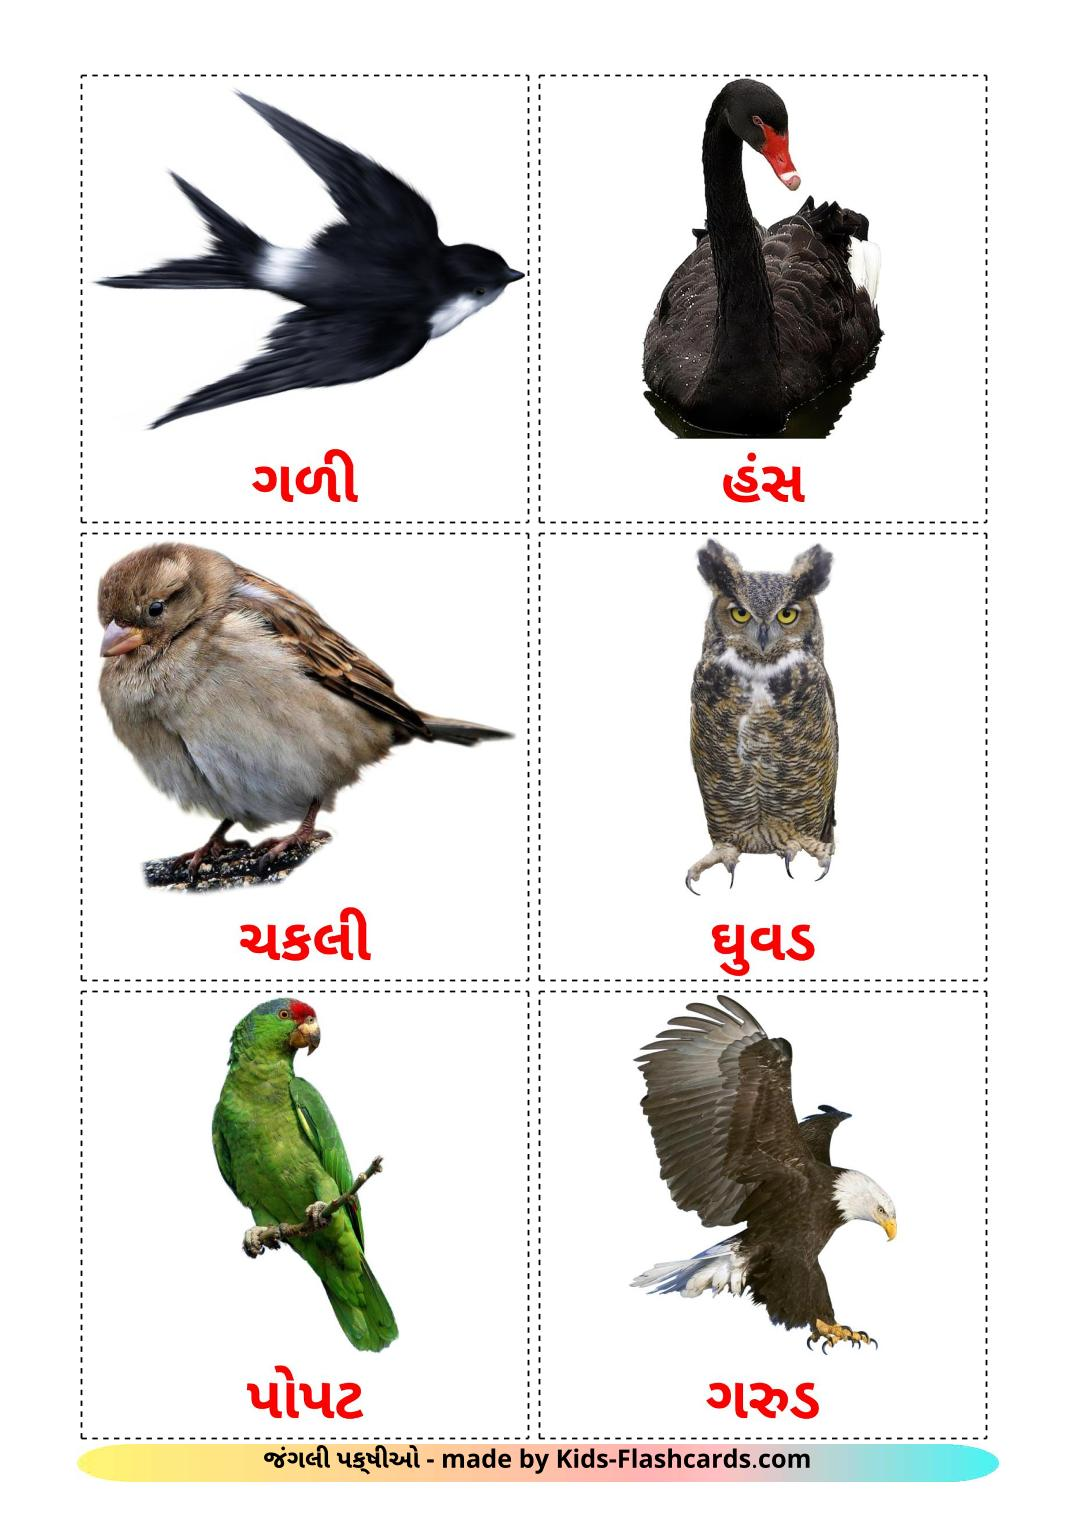 Wild birds - 18 Free Printable gujarati Flashcards